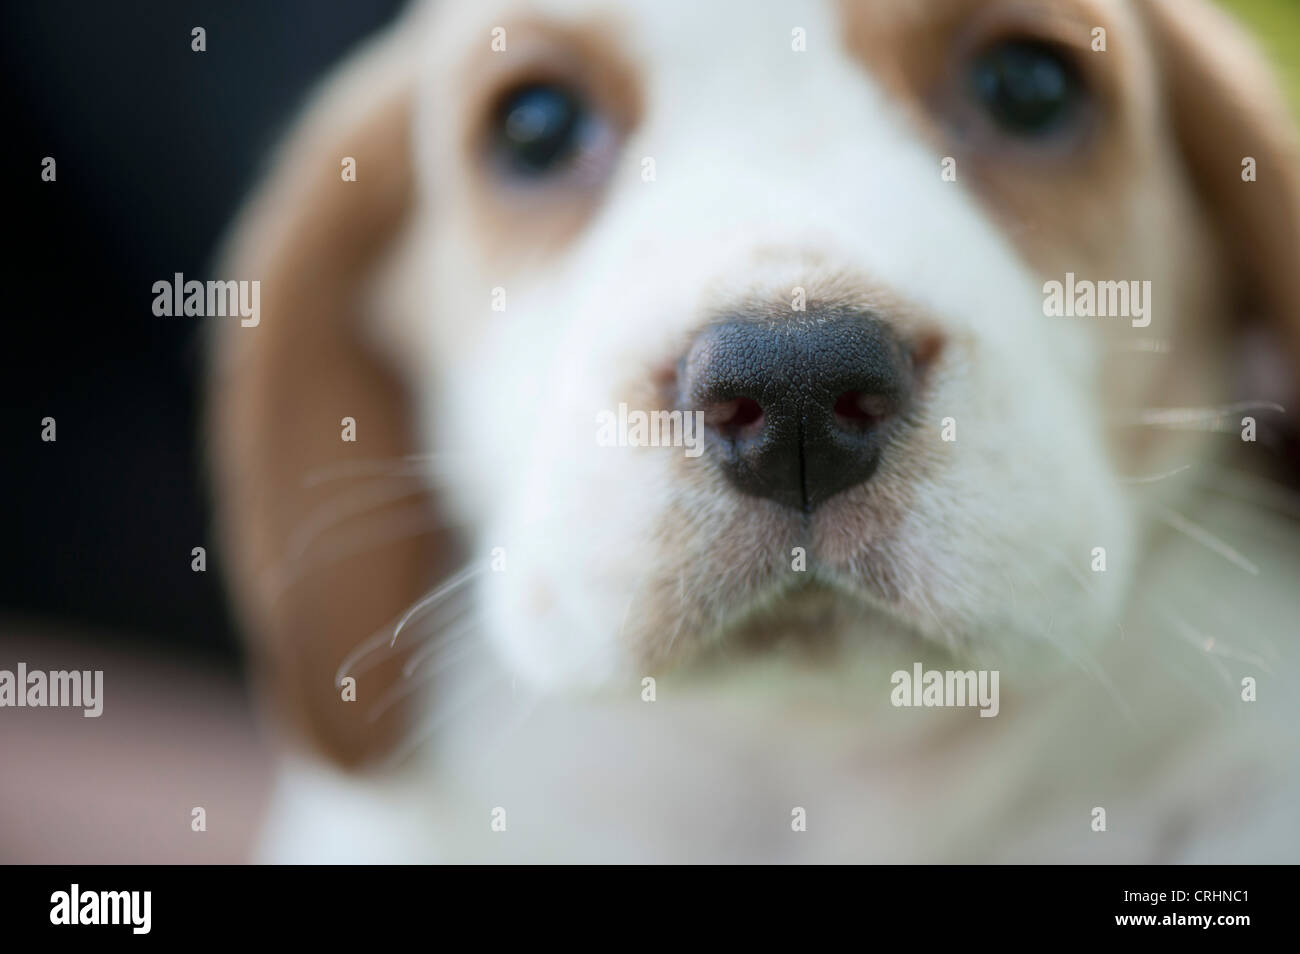 Beagle puppy, focus on nose - Stock Image